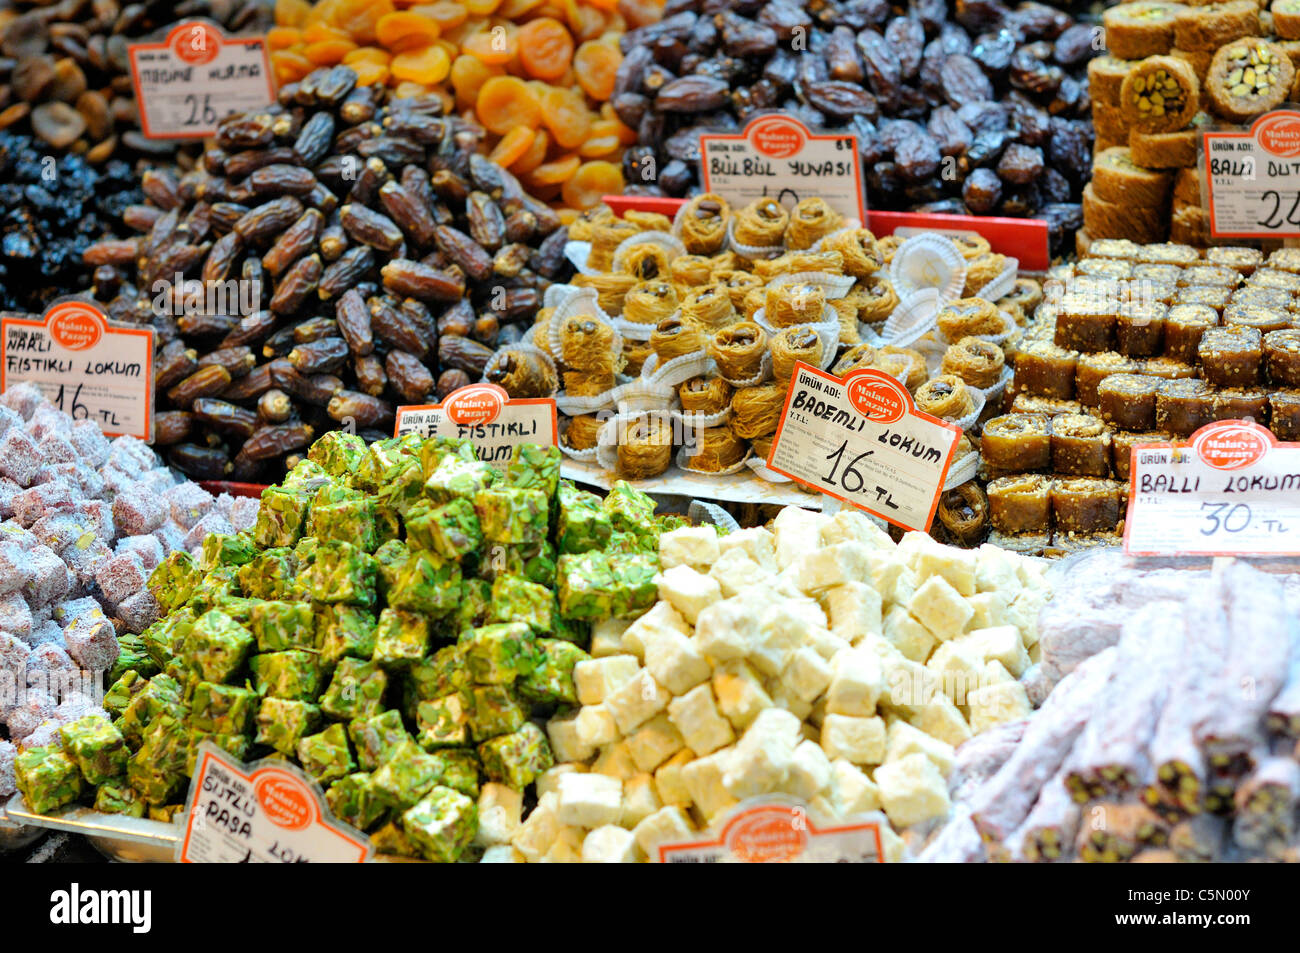 Lokum (Turkish Delight), Spice Market, Istanbul, Turkey ...